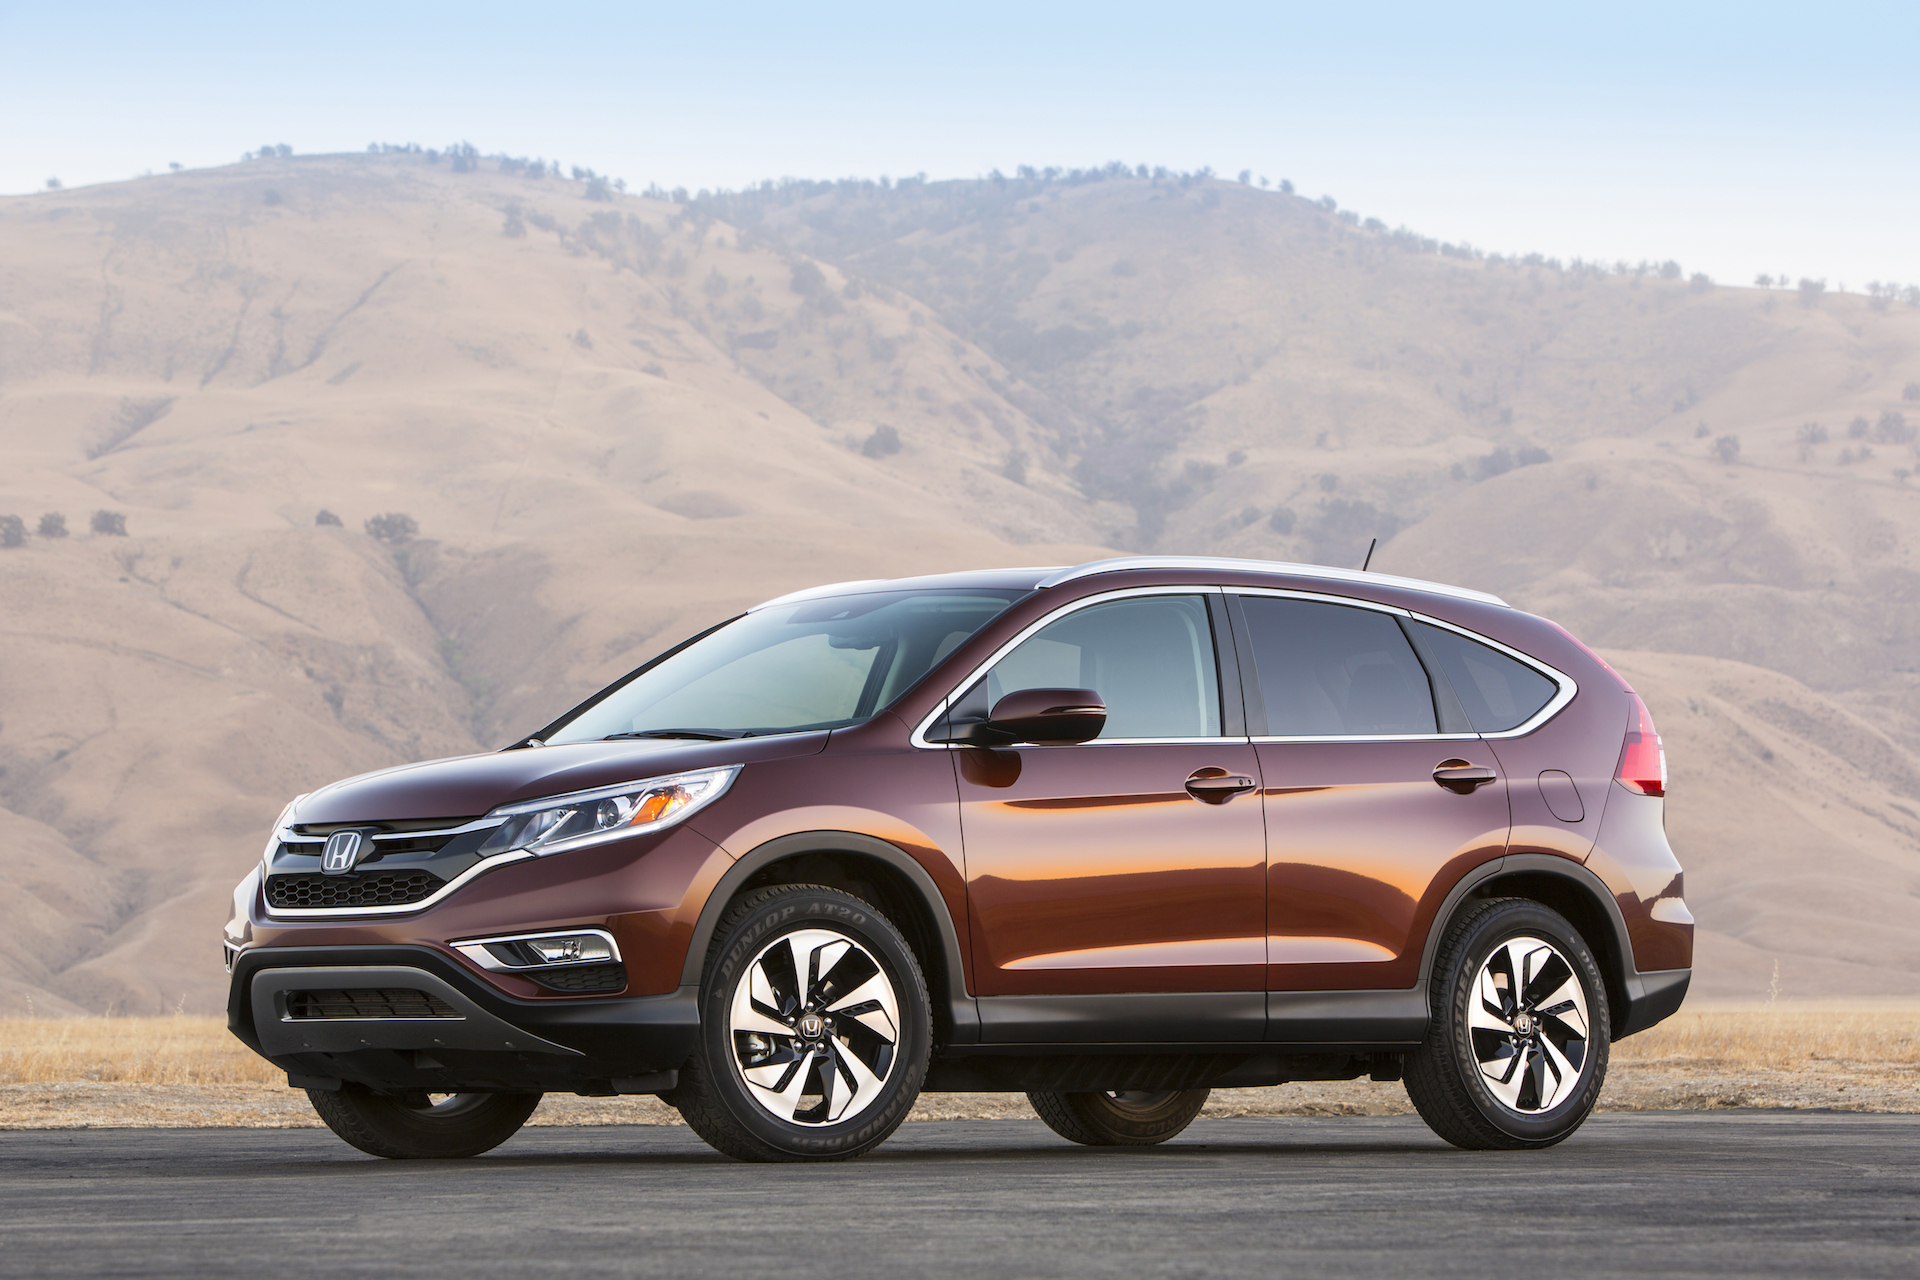 Lexus Of Kansas City >> 2016 Honda CR-V Review, Ratings, Specs, Prices, and Photos - The Car Connection